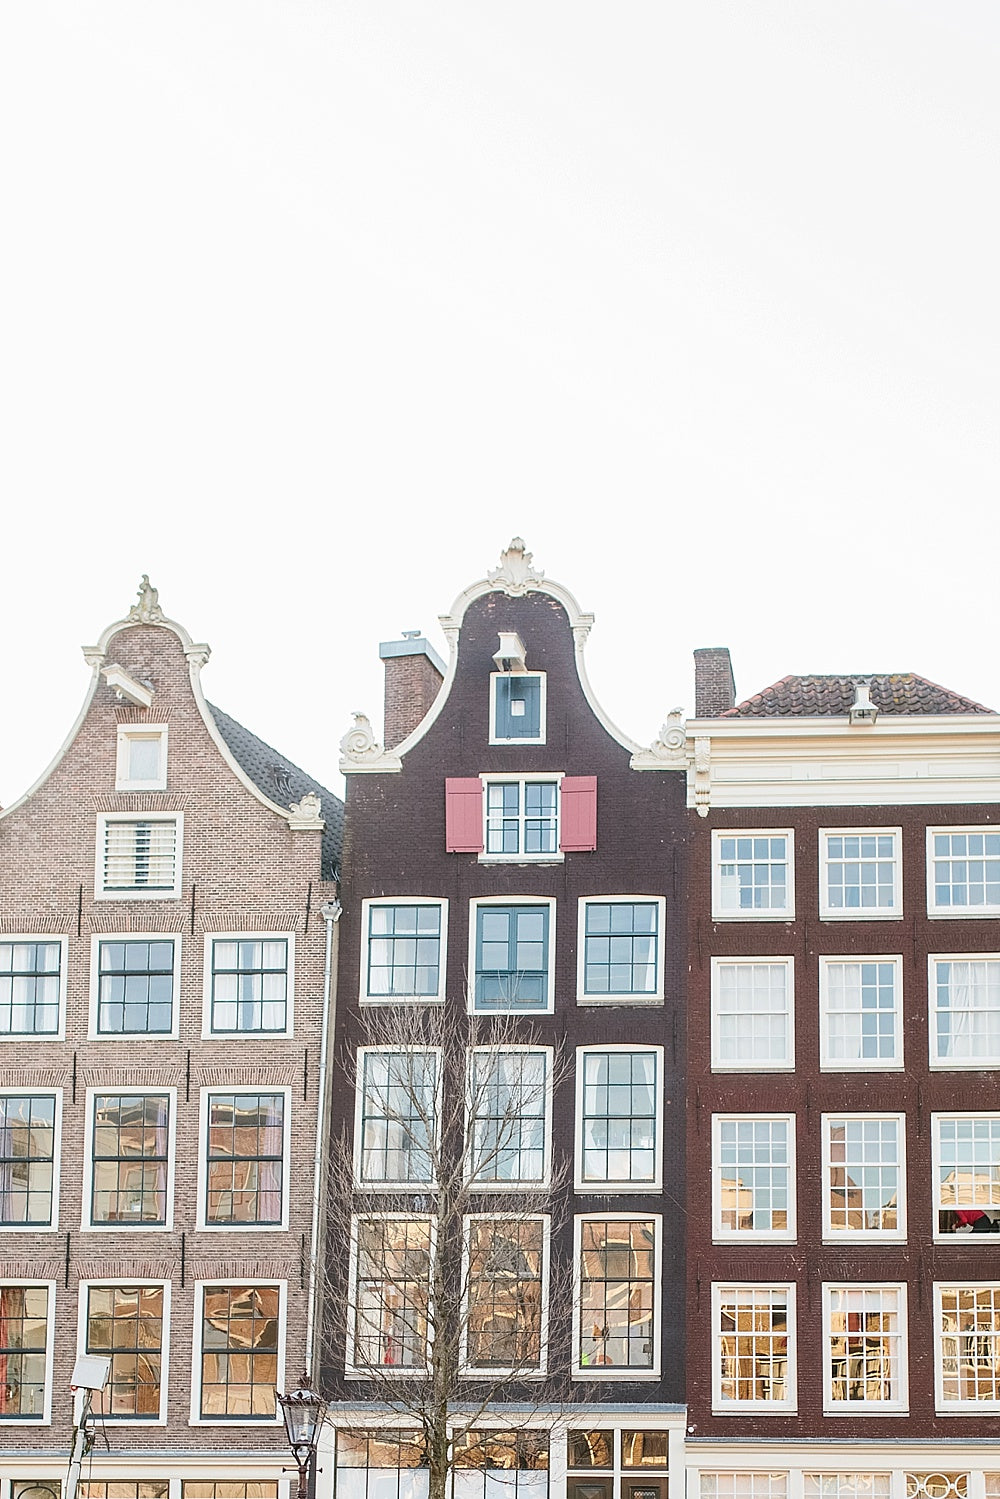 amsterdam canal houses print